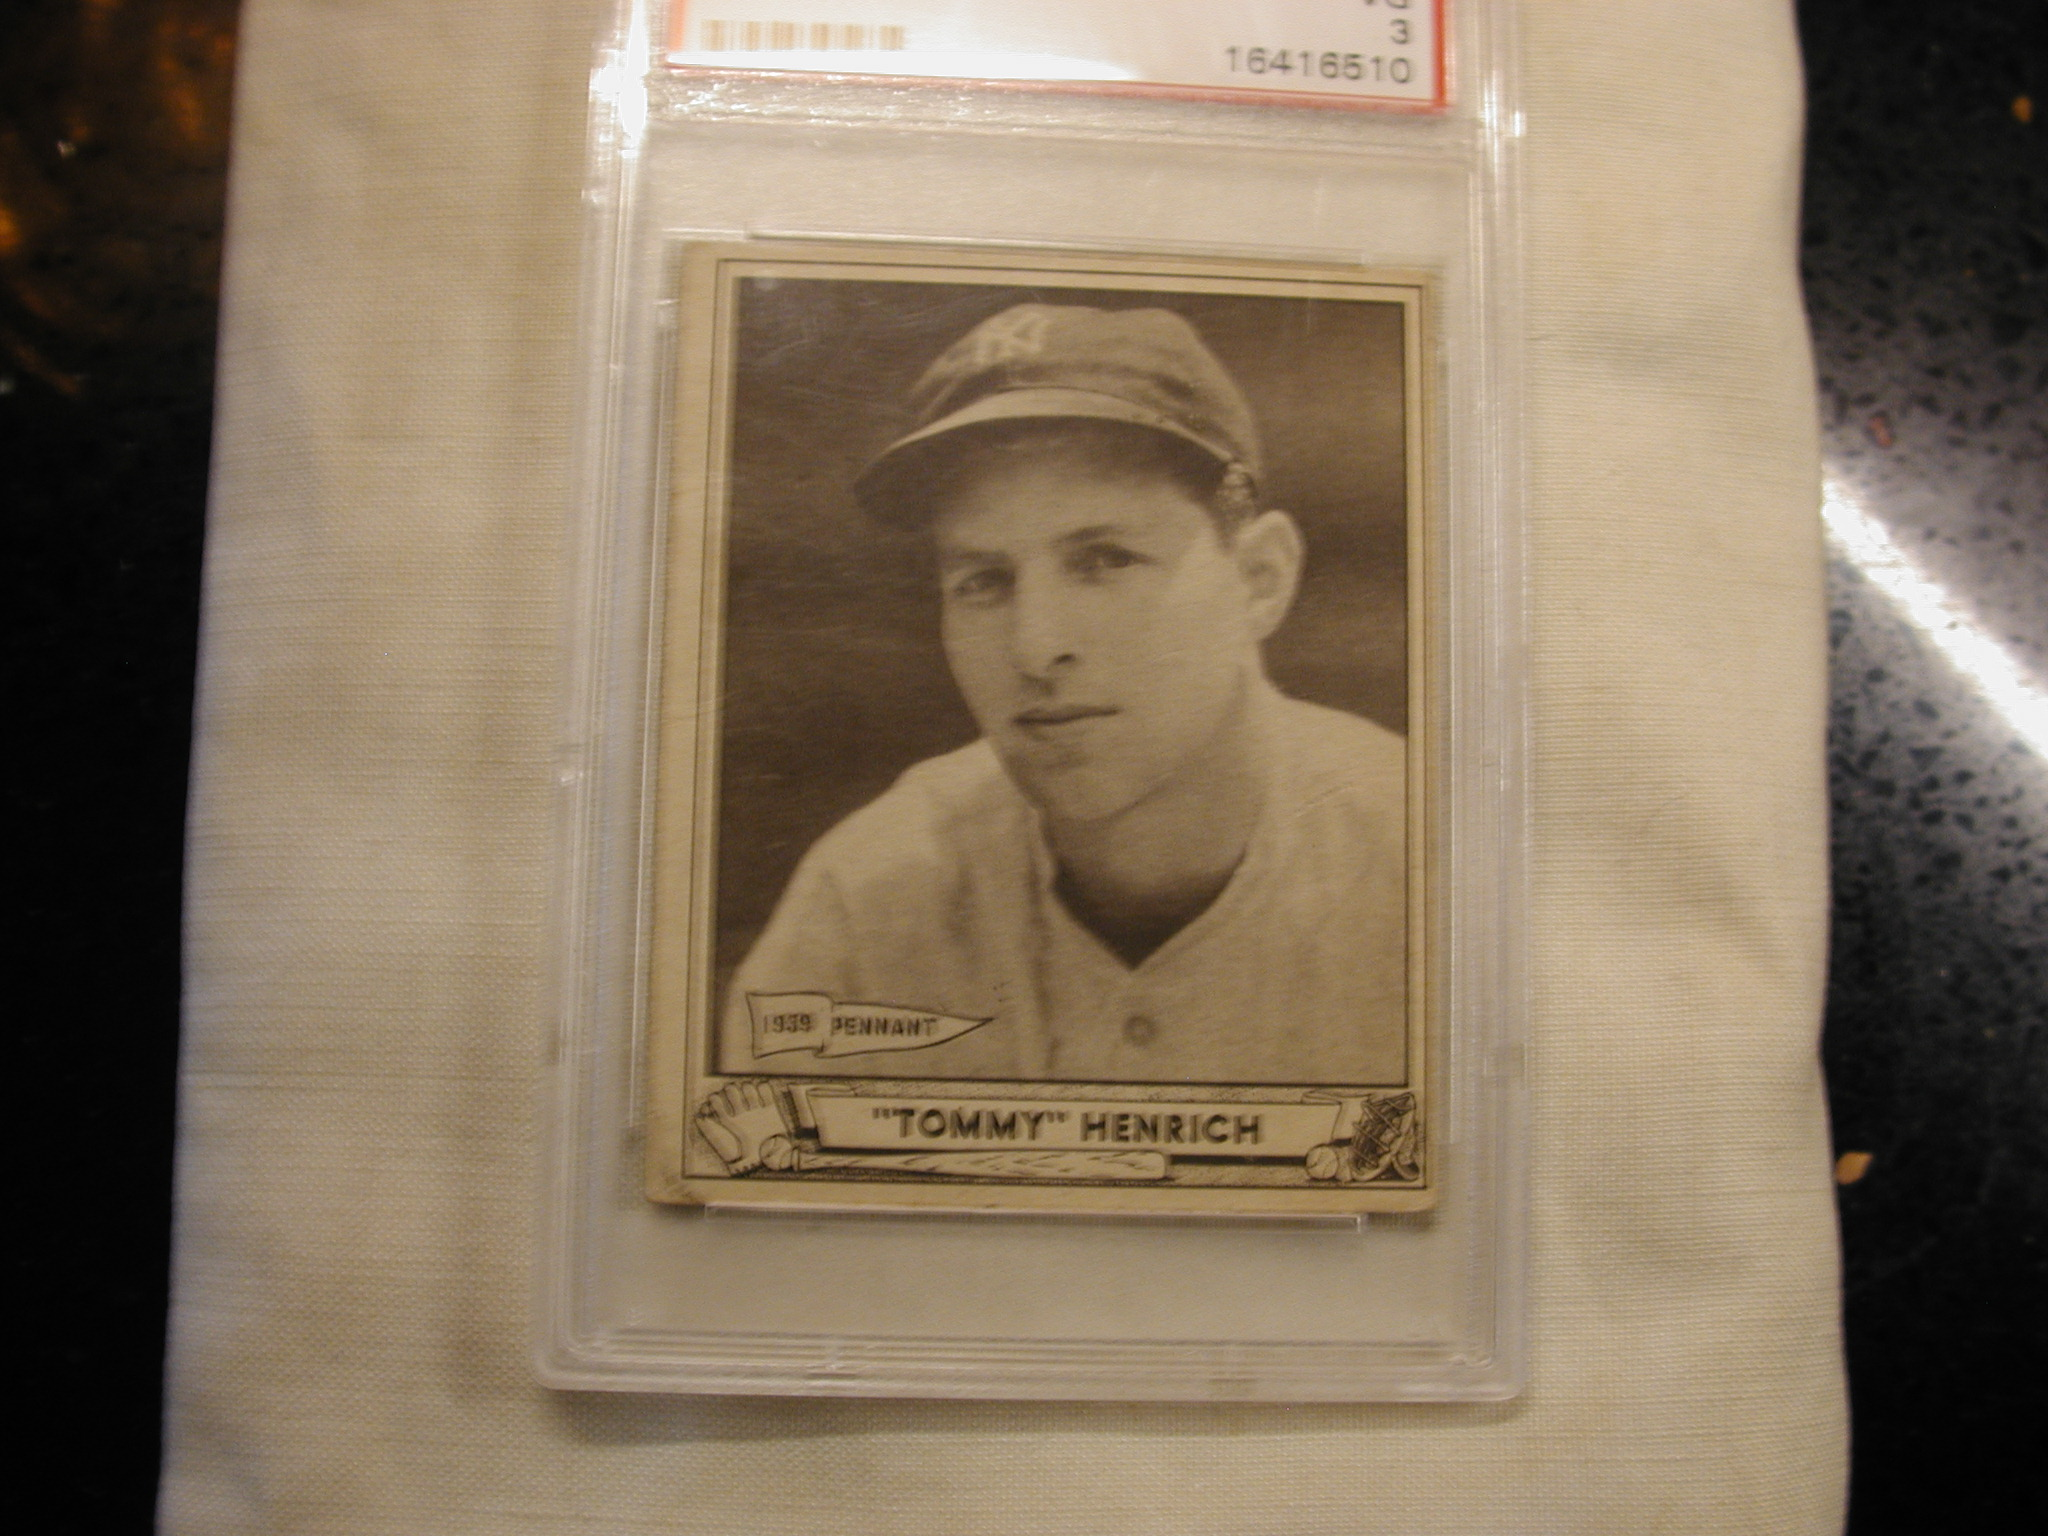 Tommy Henrich Yankees 4 1940 Play Ball Psa Certified Baseball Card